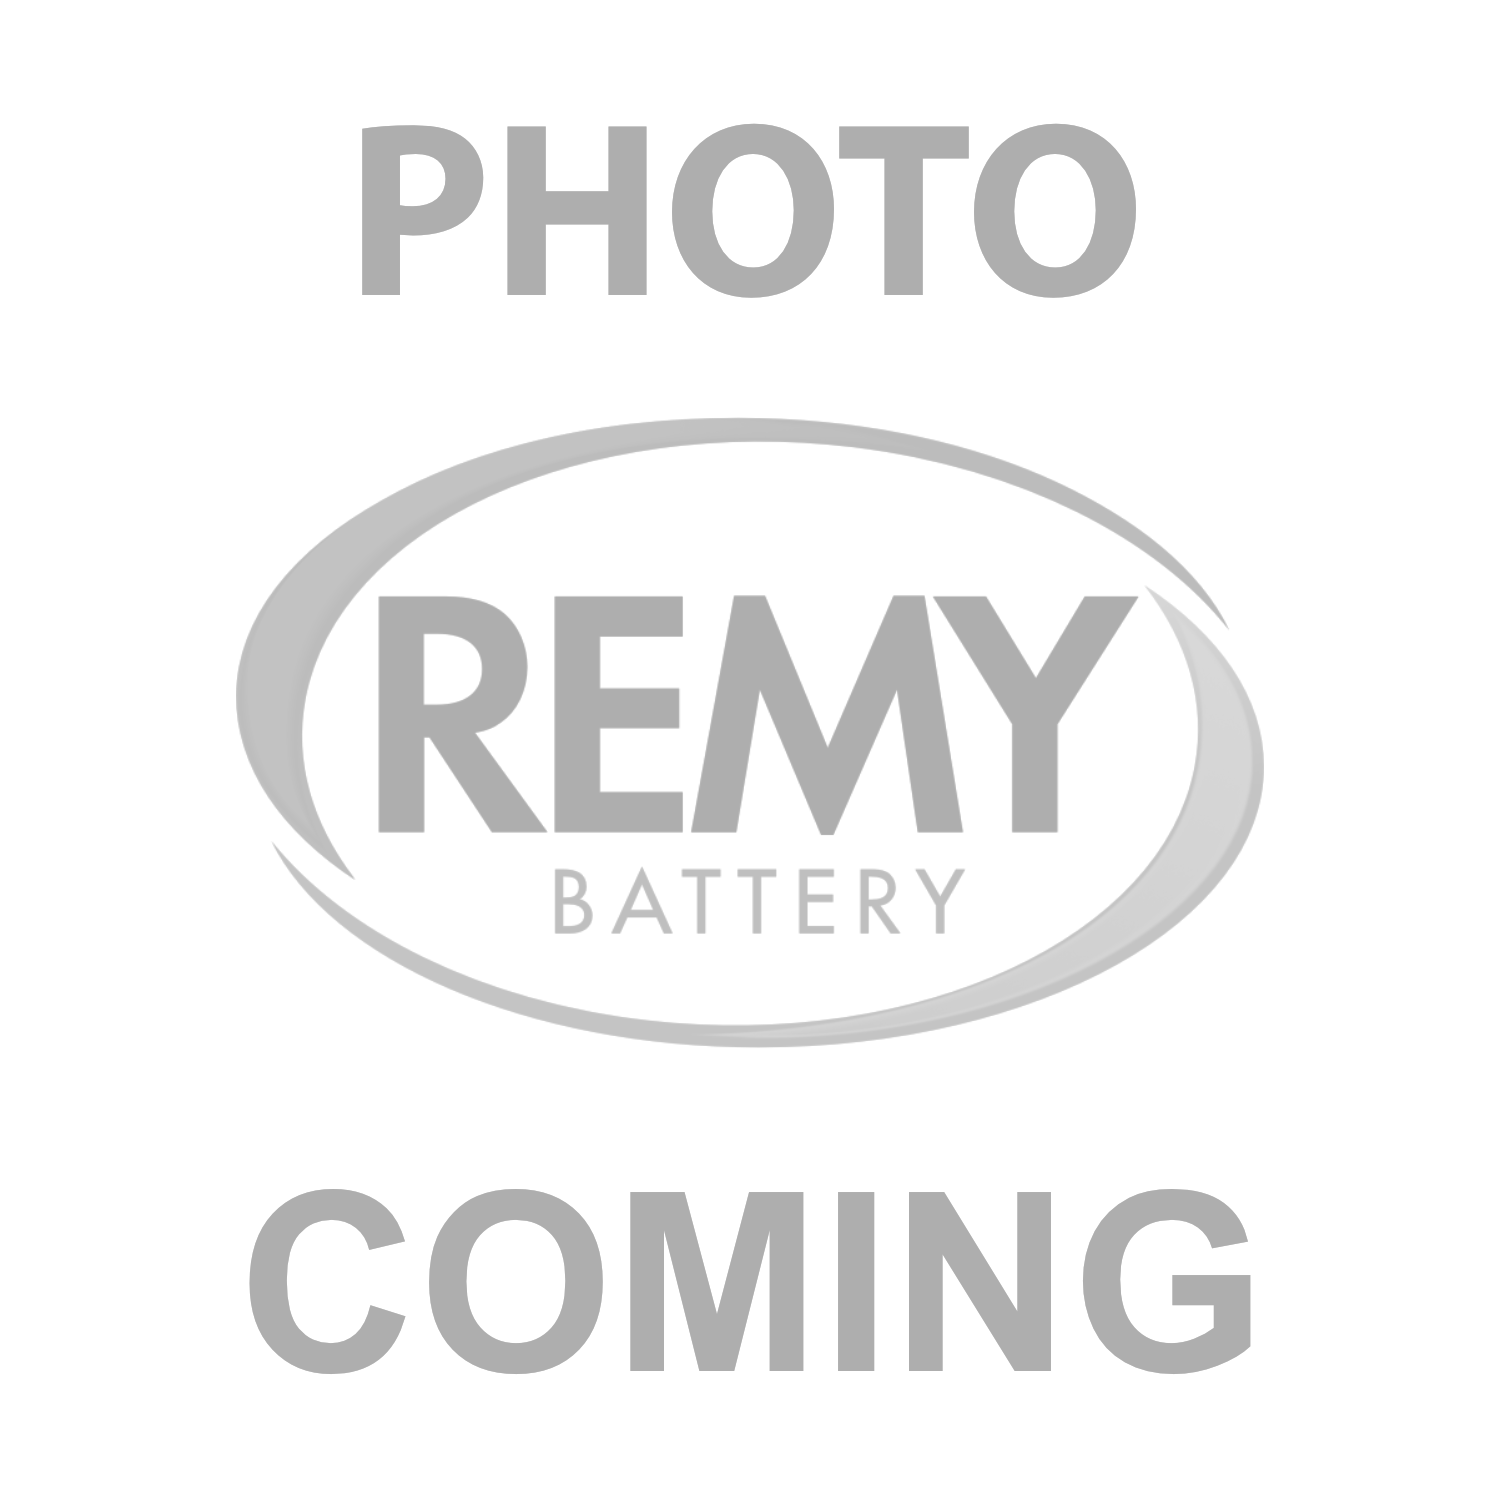 Blackberry E-M1 Cell Phone Battery